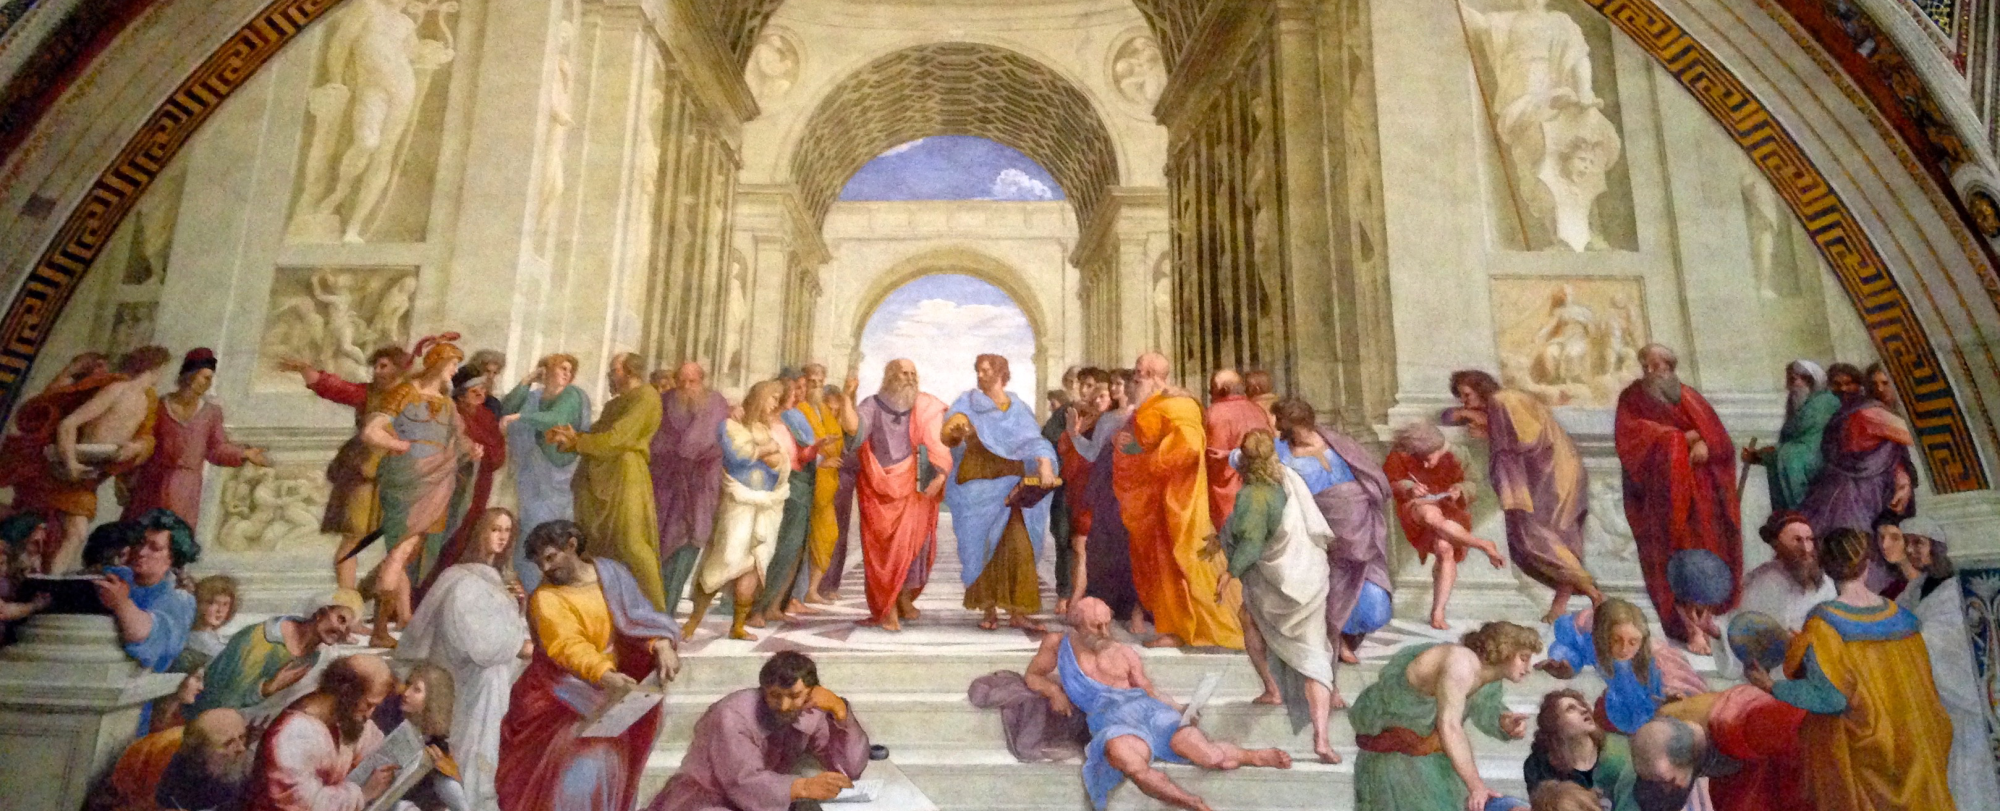 epicureanism vs stoicism Epicurus, founder of the school of philosophy called epicureanism  where the  epicureans believed there was only atoms and void, the stoics.